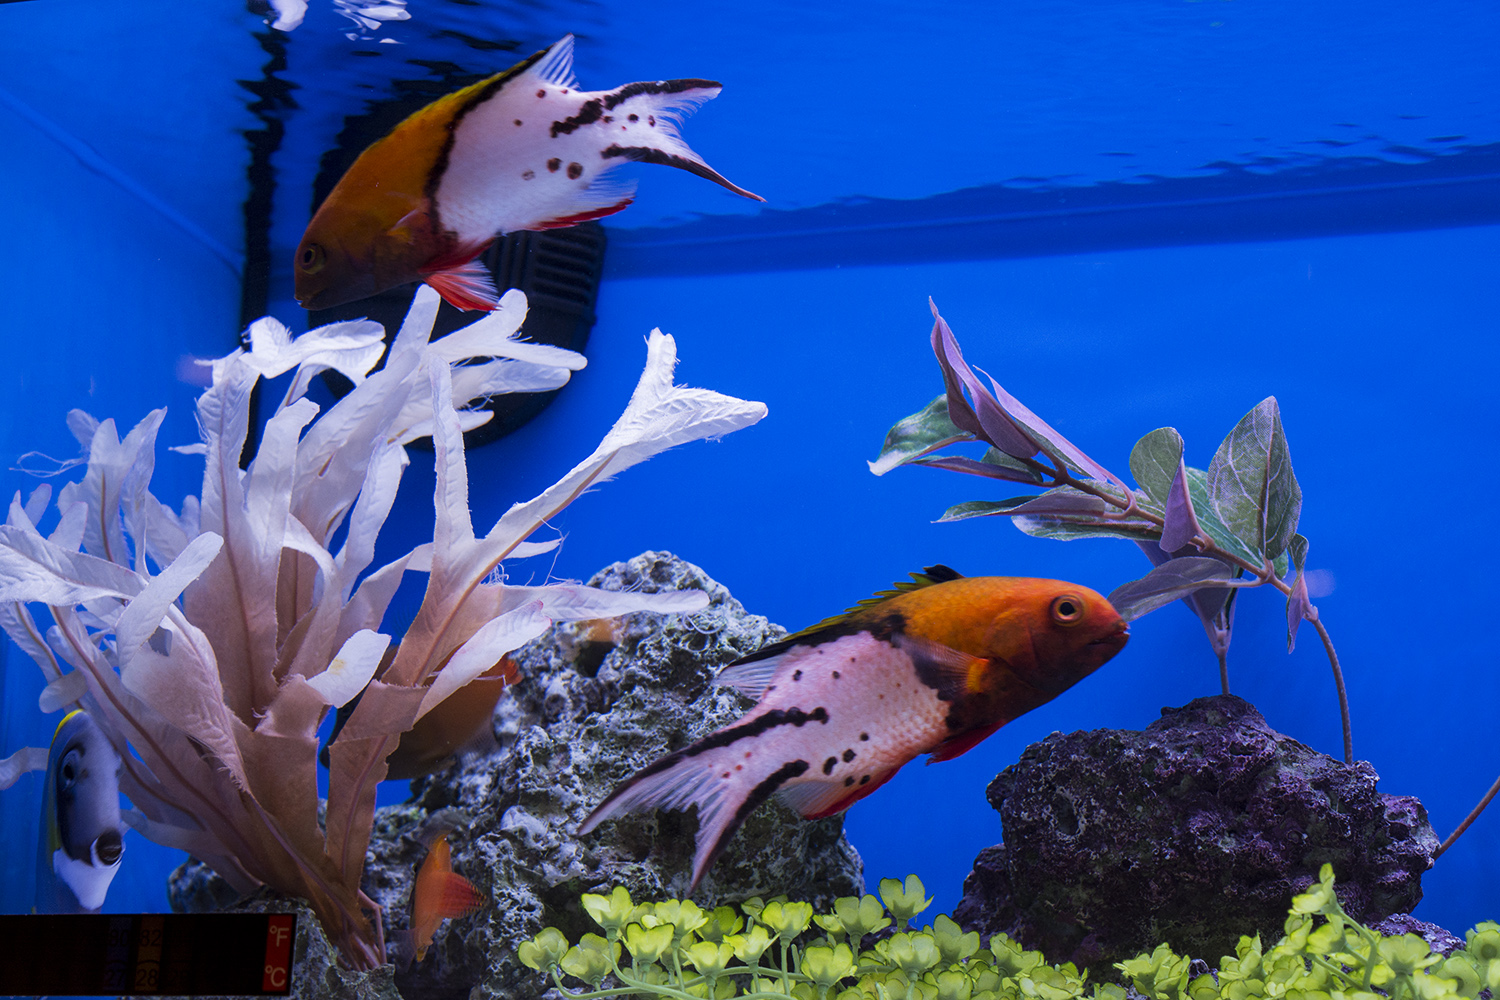 A pair of Lyretail Hogfish (Bodianus anthioides) showing off their namesake caudal fins in one of Segrest Farms' aquariums